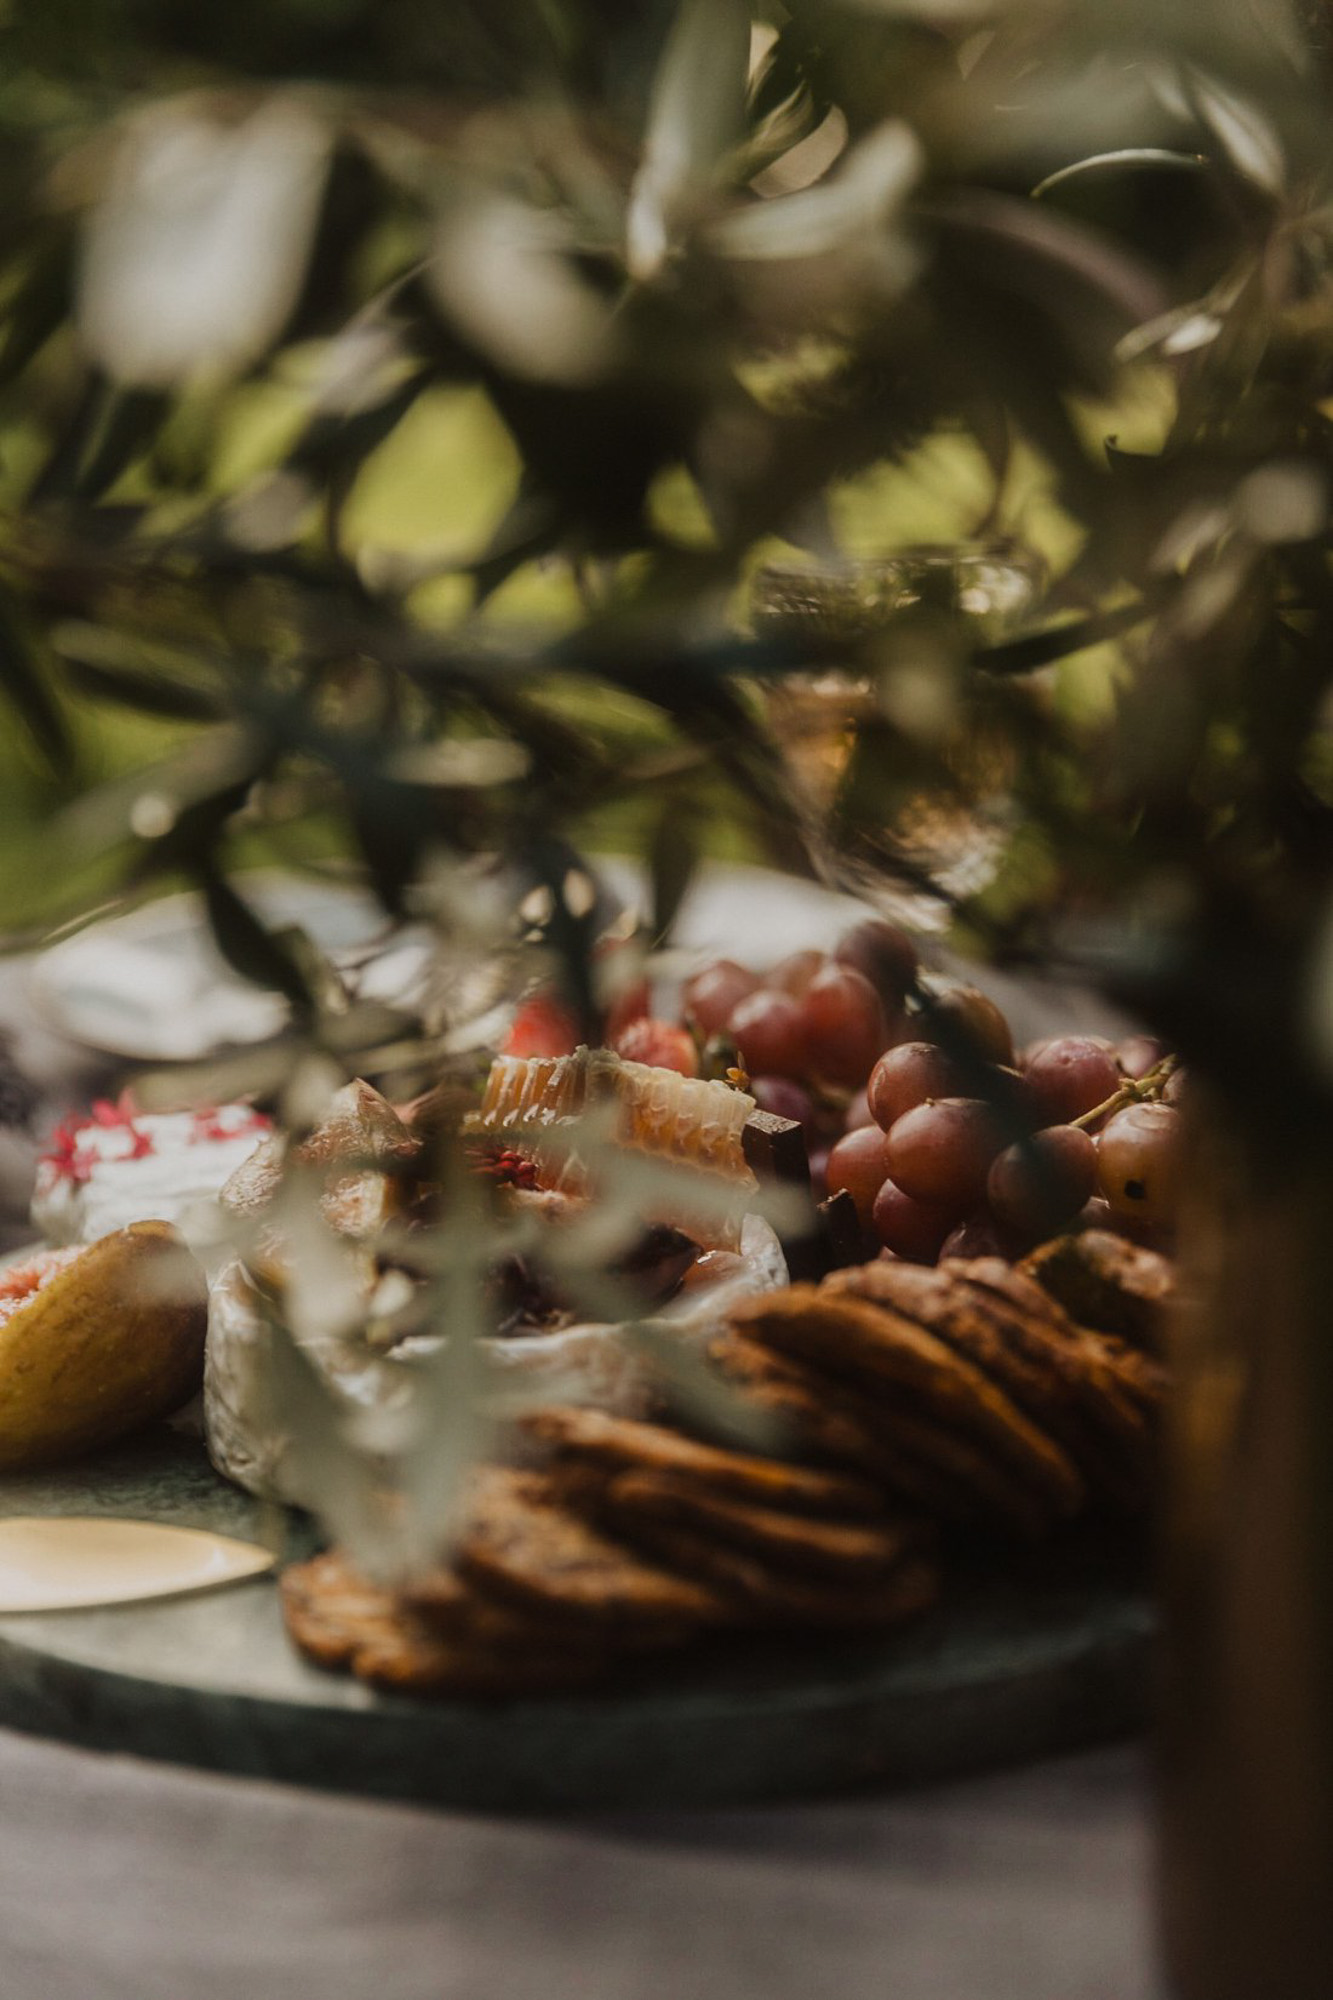 Styled Photshoot - Orchard Picnic Cairns  - Event Styling and Catering by The Collection Co-17.jpg